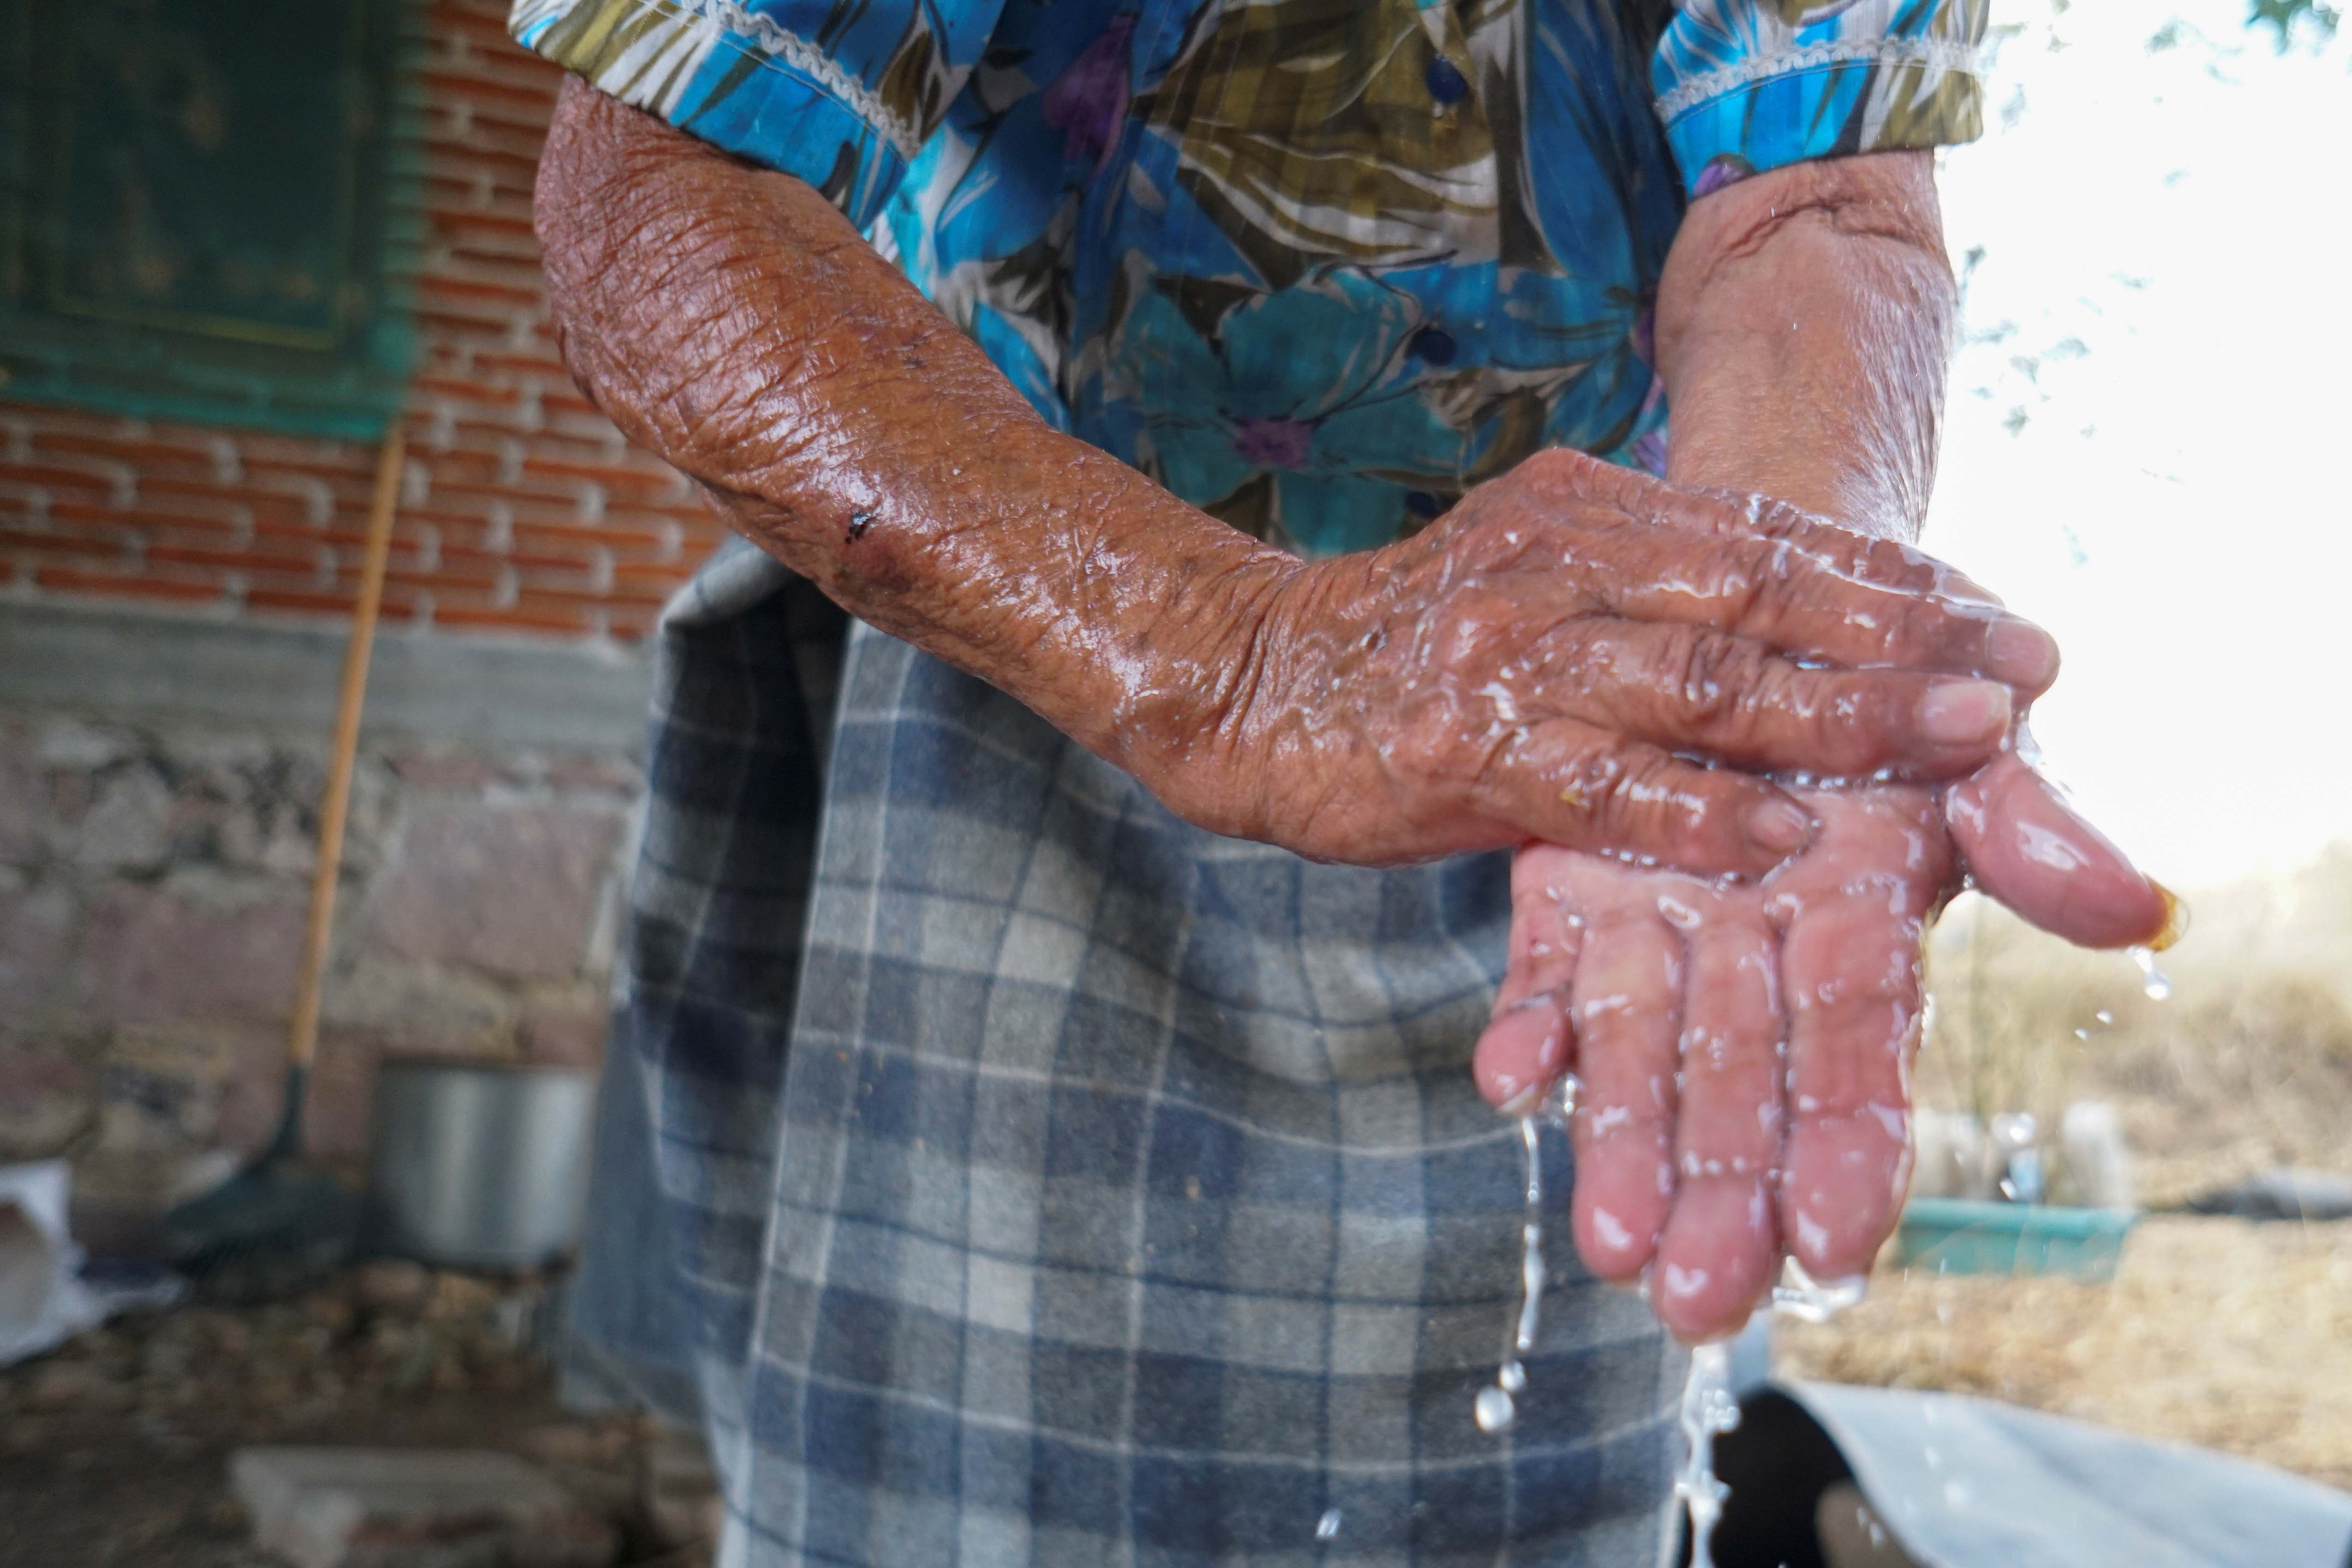 A Zapotec woman washes her hands after learning from a local radio program about hand-washing and social distancing to avoid COVID-19, in Oaxaca state, Mexico, March 31, 2020.